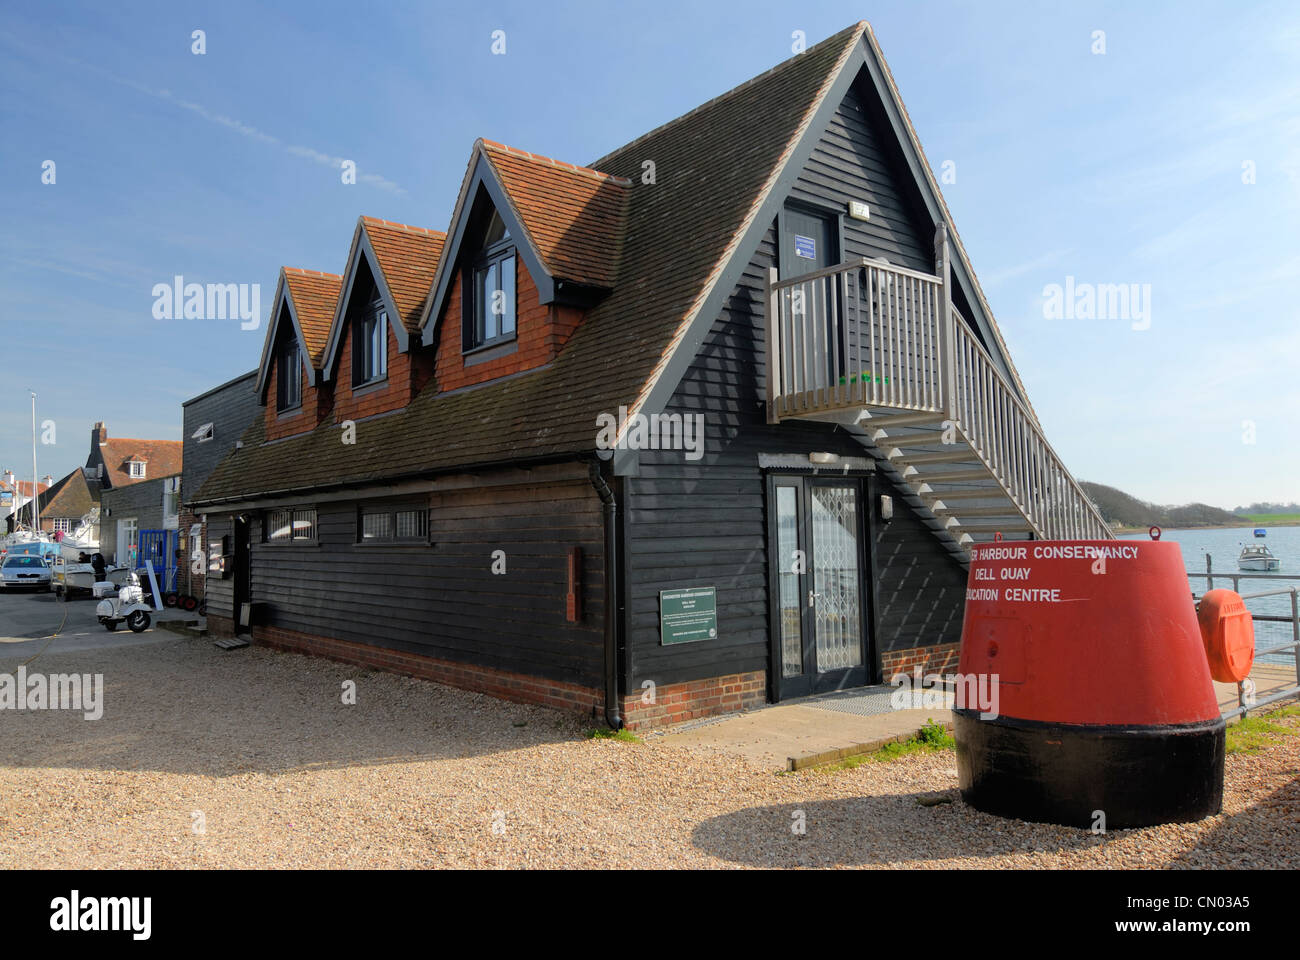 Chichester harbour conservancy education information centre Dell Quay West Sussex Uk - Stock Image